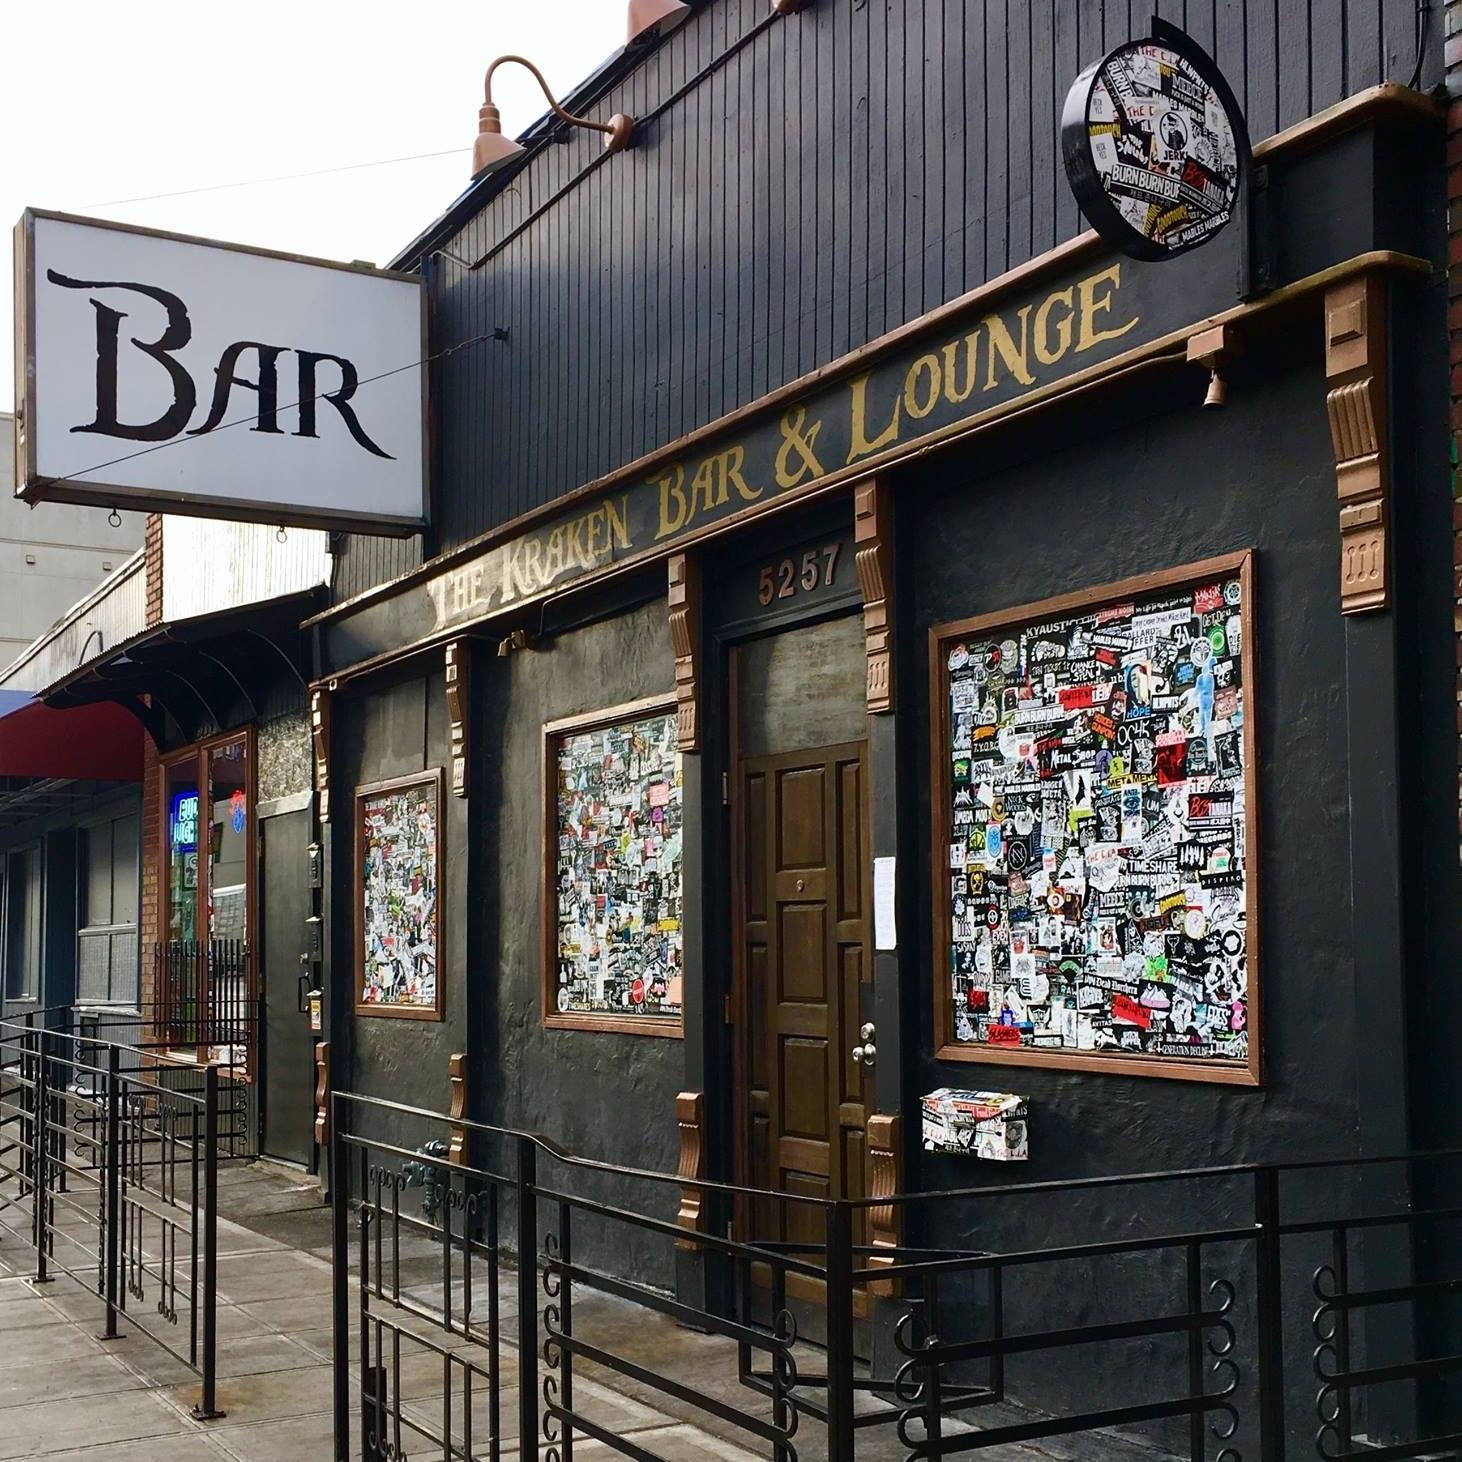 """The exterior of The Kraken Bar & Lounge in the U District, with a sign that says """"Bar"""" and the name emblazoned in gold lettering out front"""